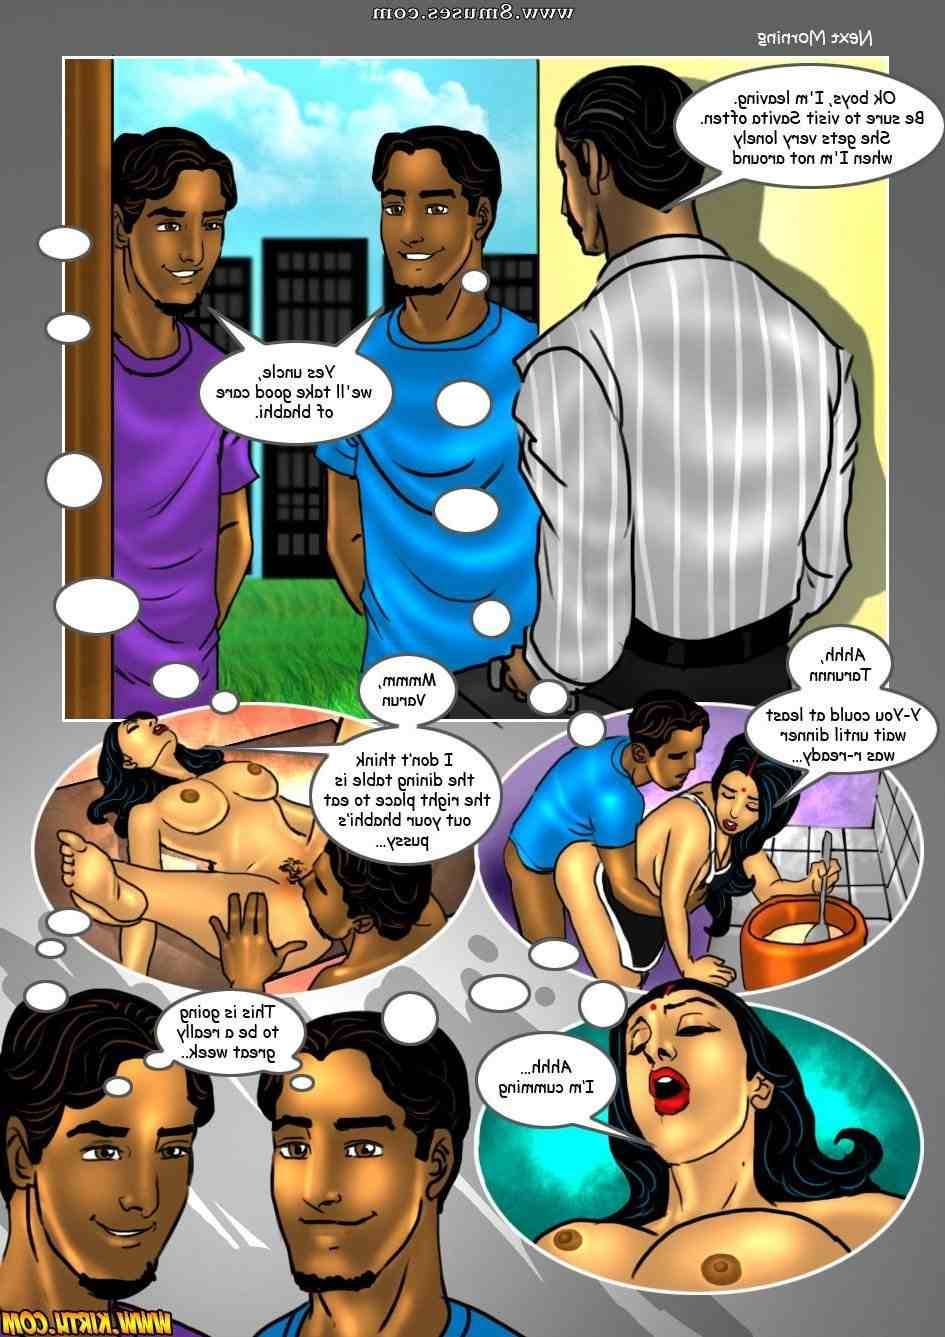 Kirtu_com-Comics/Savita-Bhabhi/Savita-Bhabhi-Episode-17-Double-Trouble-Part-2 Savita_Bhabhi_-_Episode_17__Double_Trouble_Part_2__8muses_-_Sex_and_Porn_Comics_3.jpg